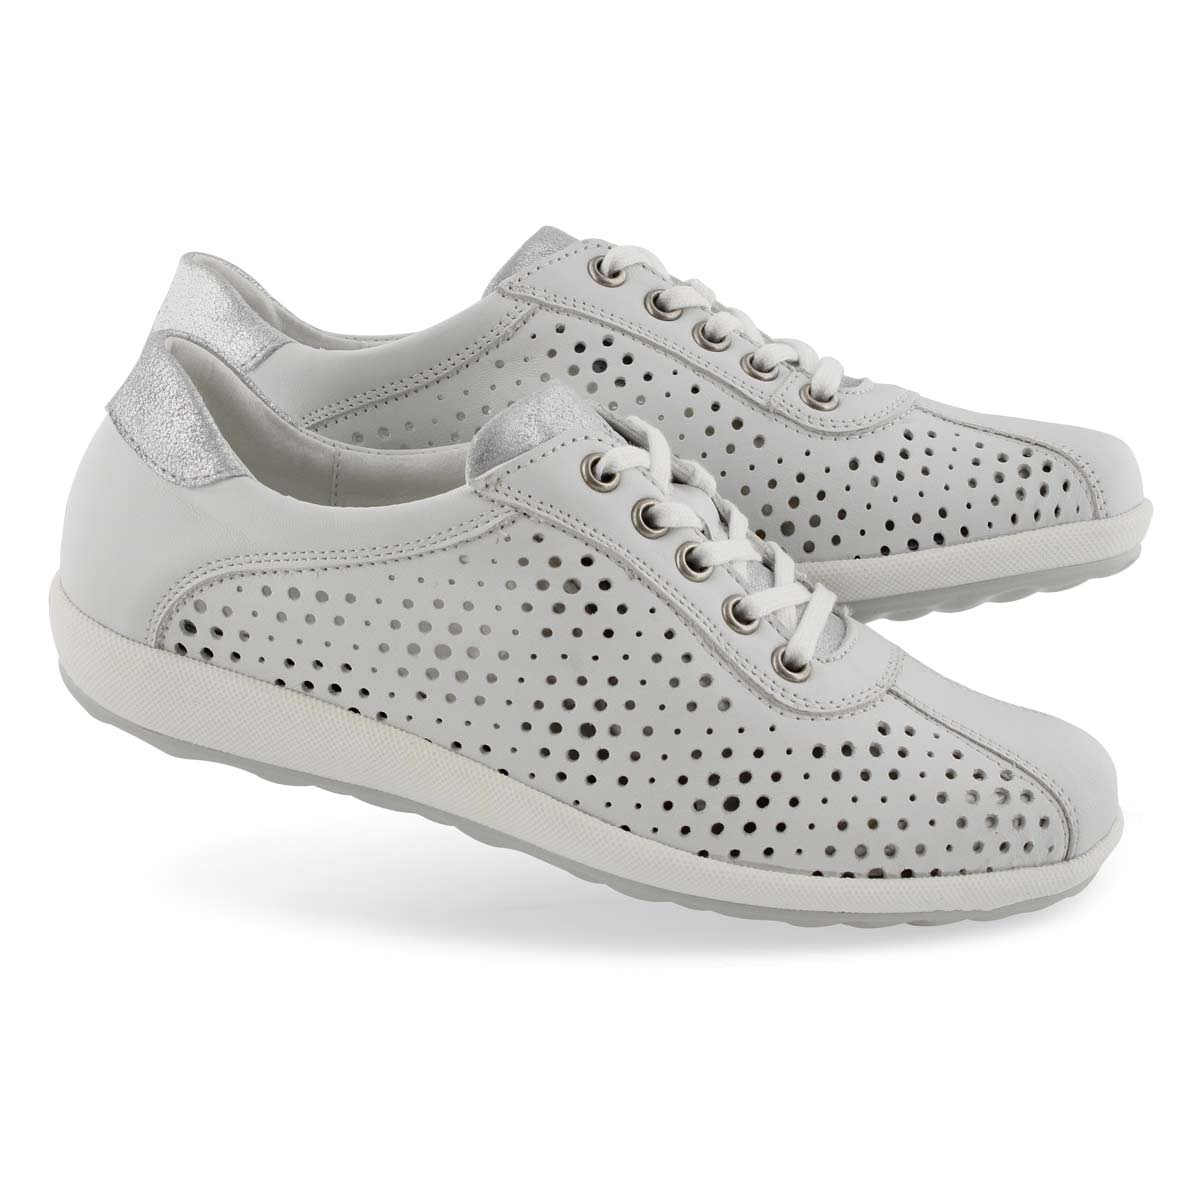 Lds Viola 09 white lace up sneaker